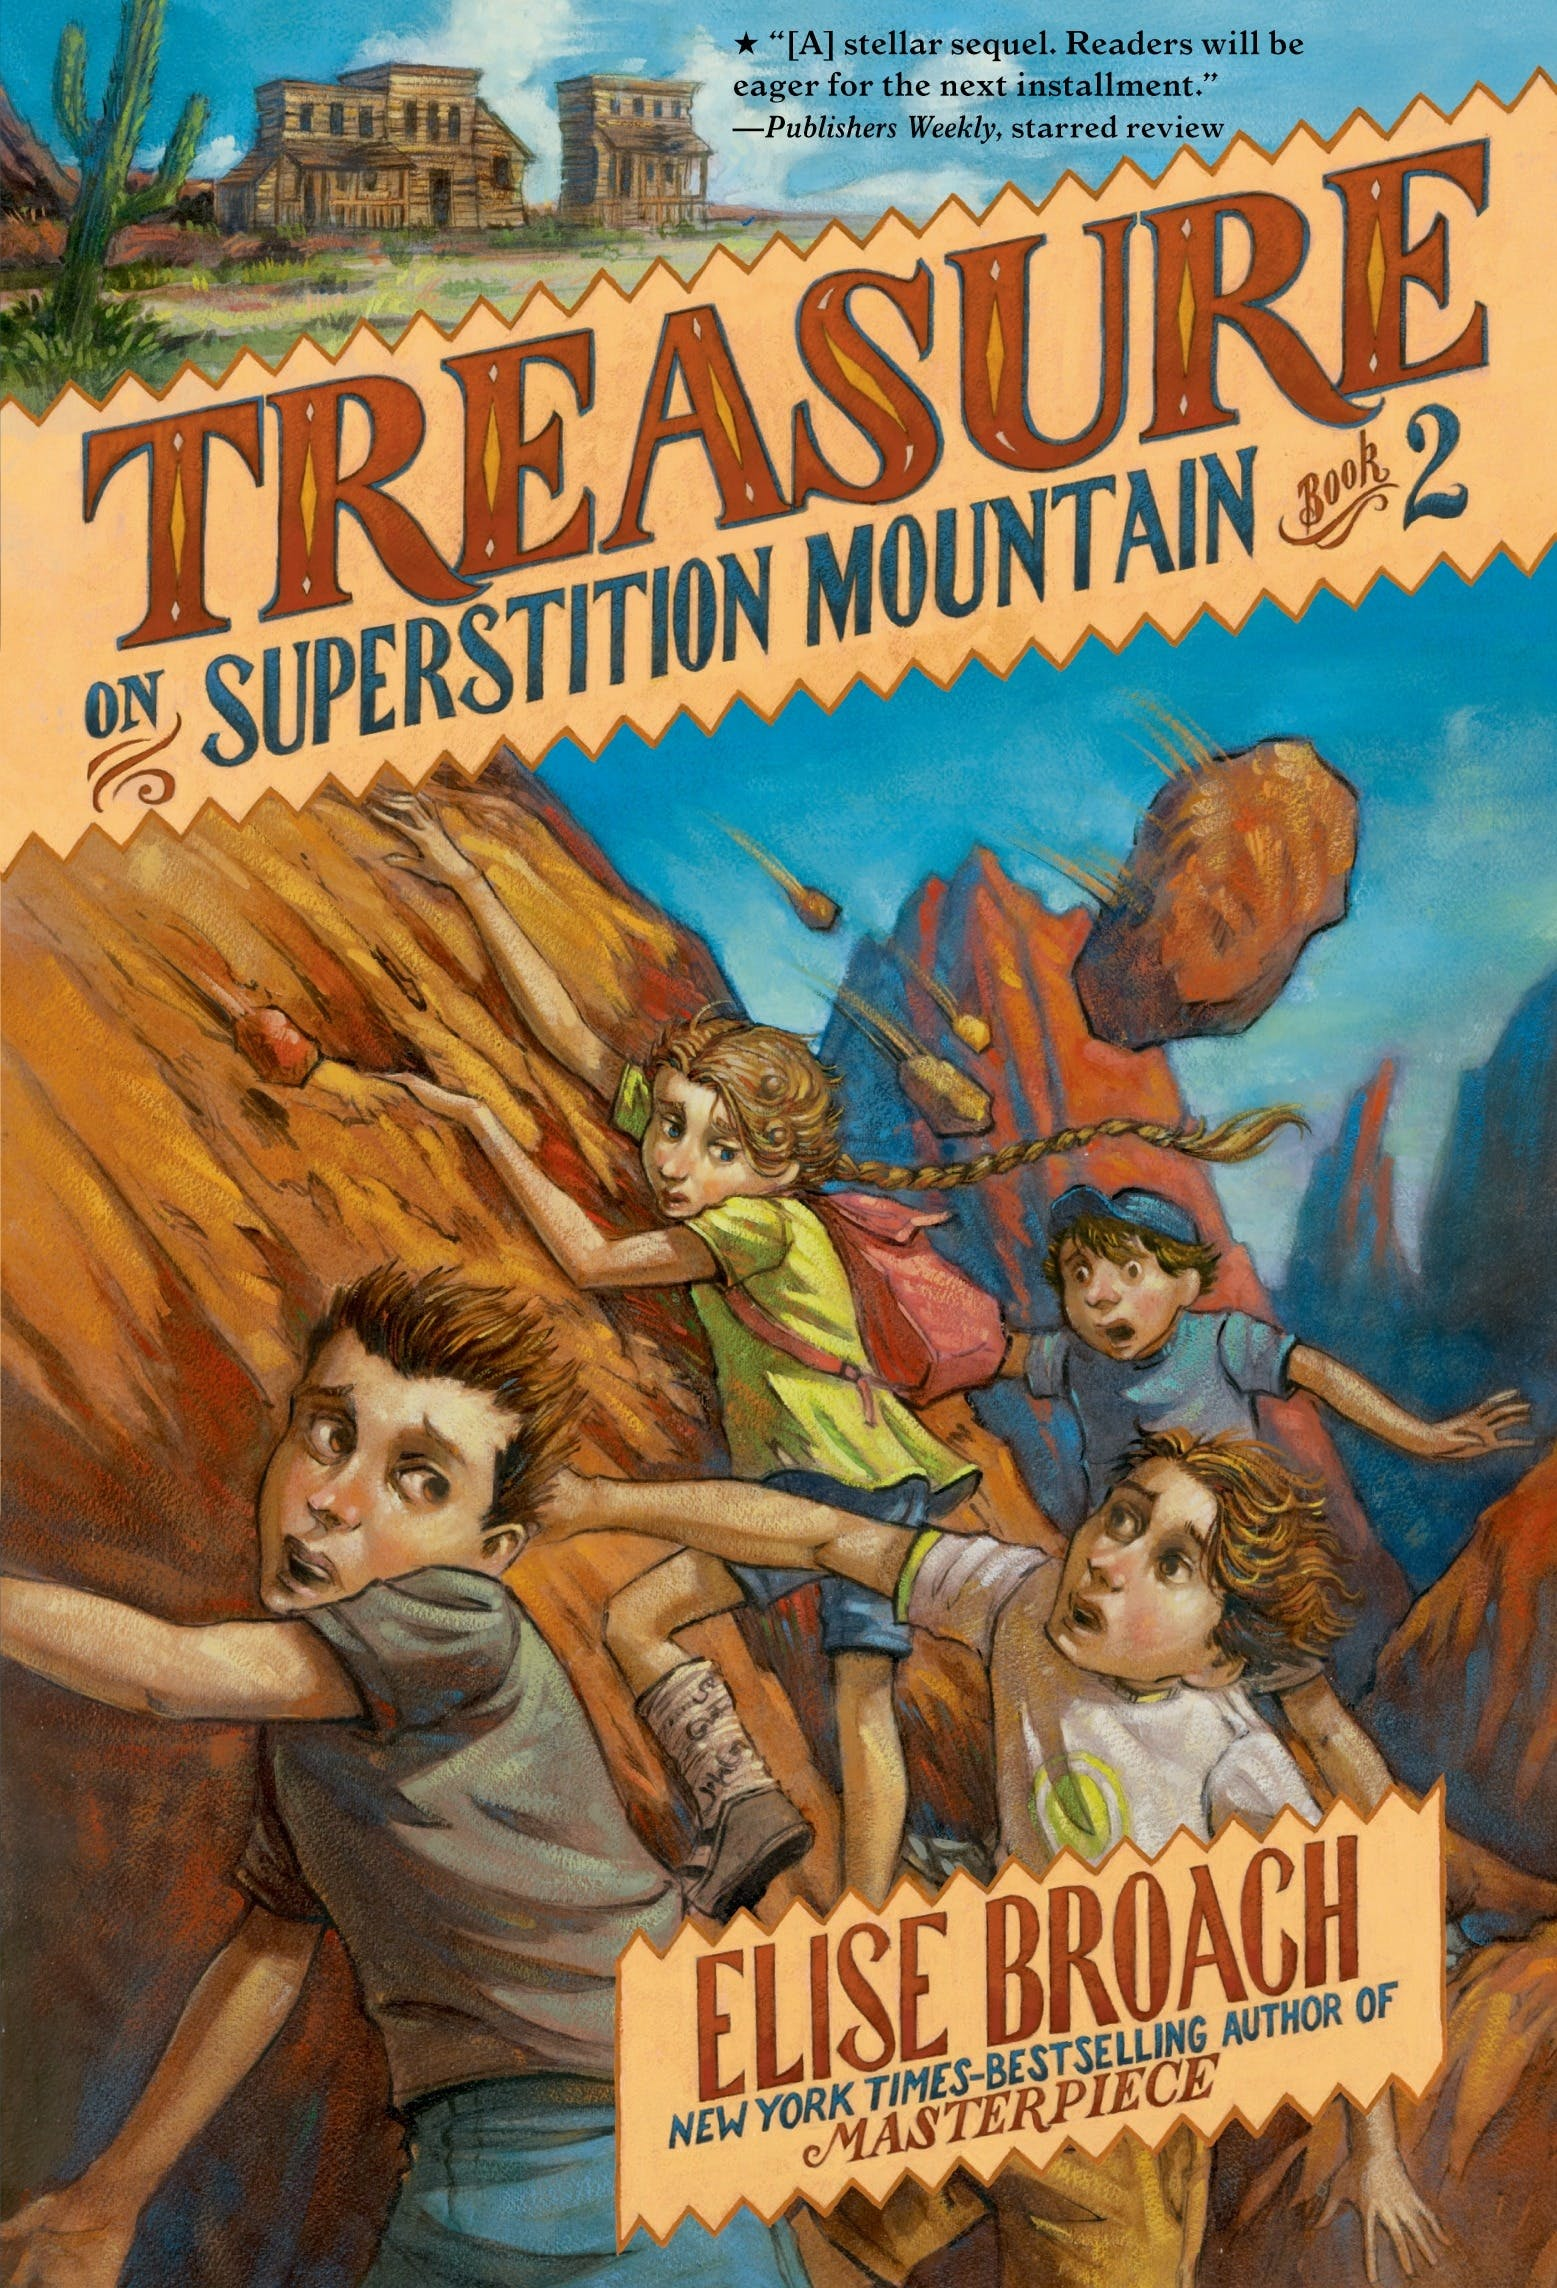 Image of Treasure on Superstition Mountain